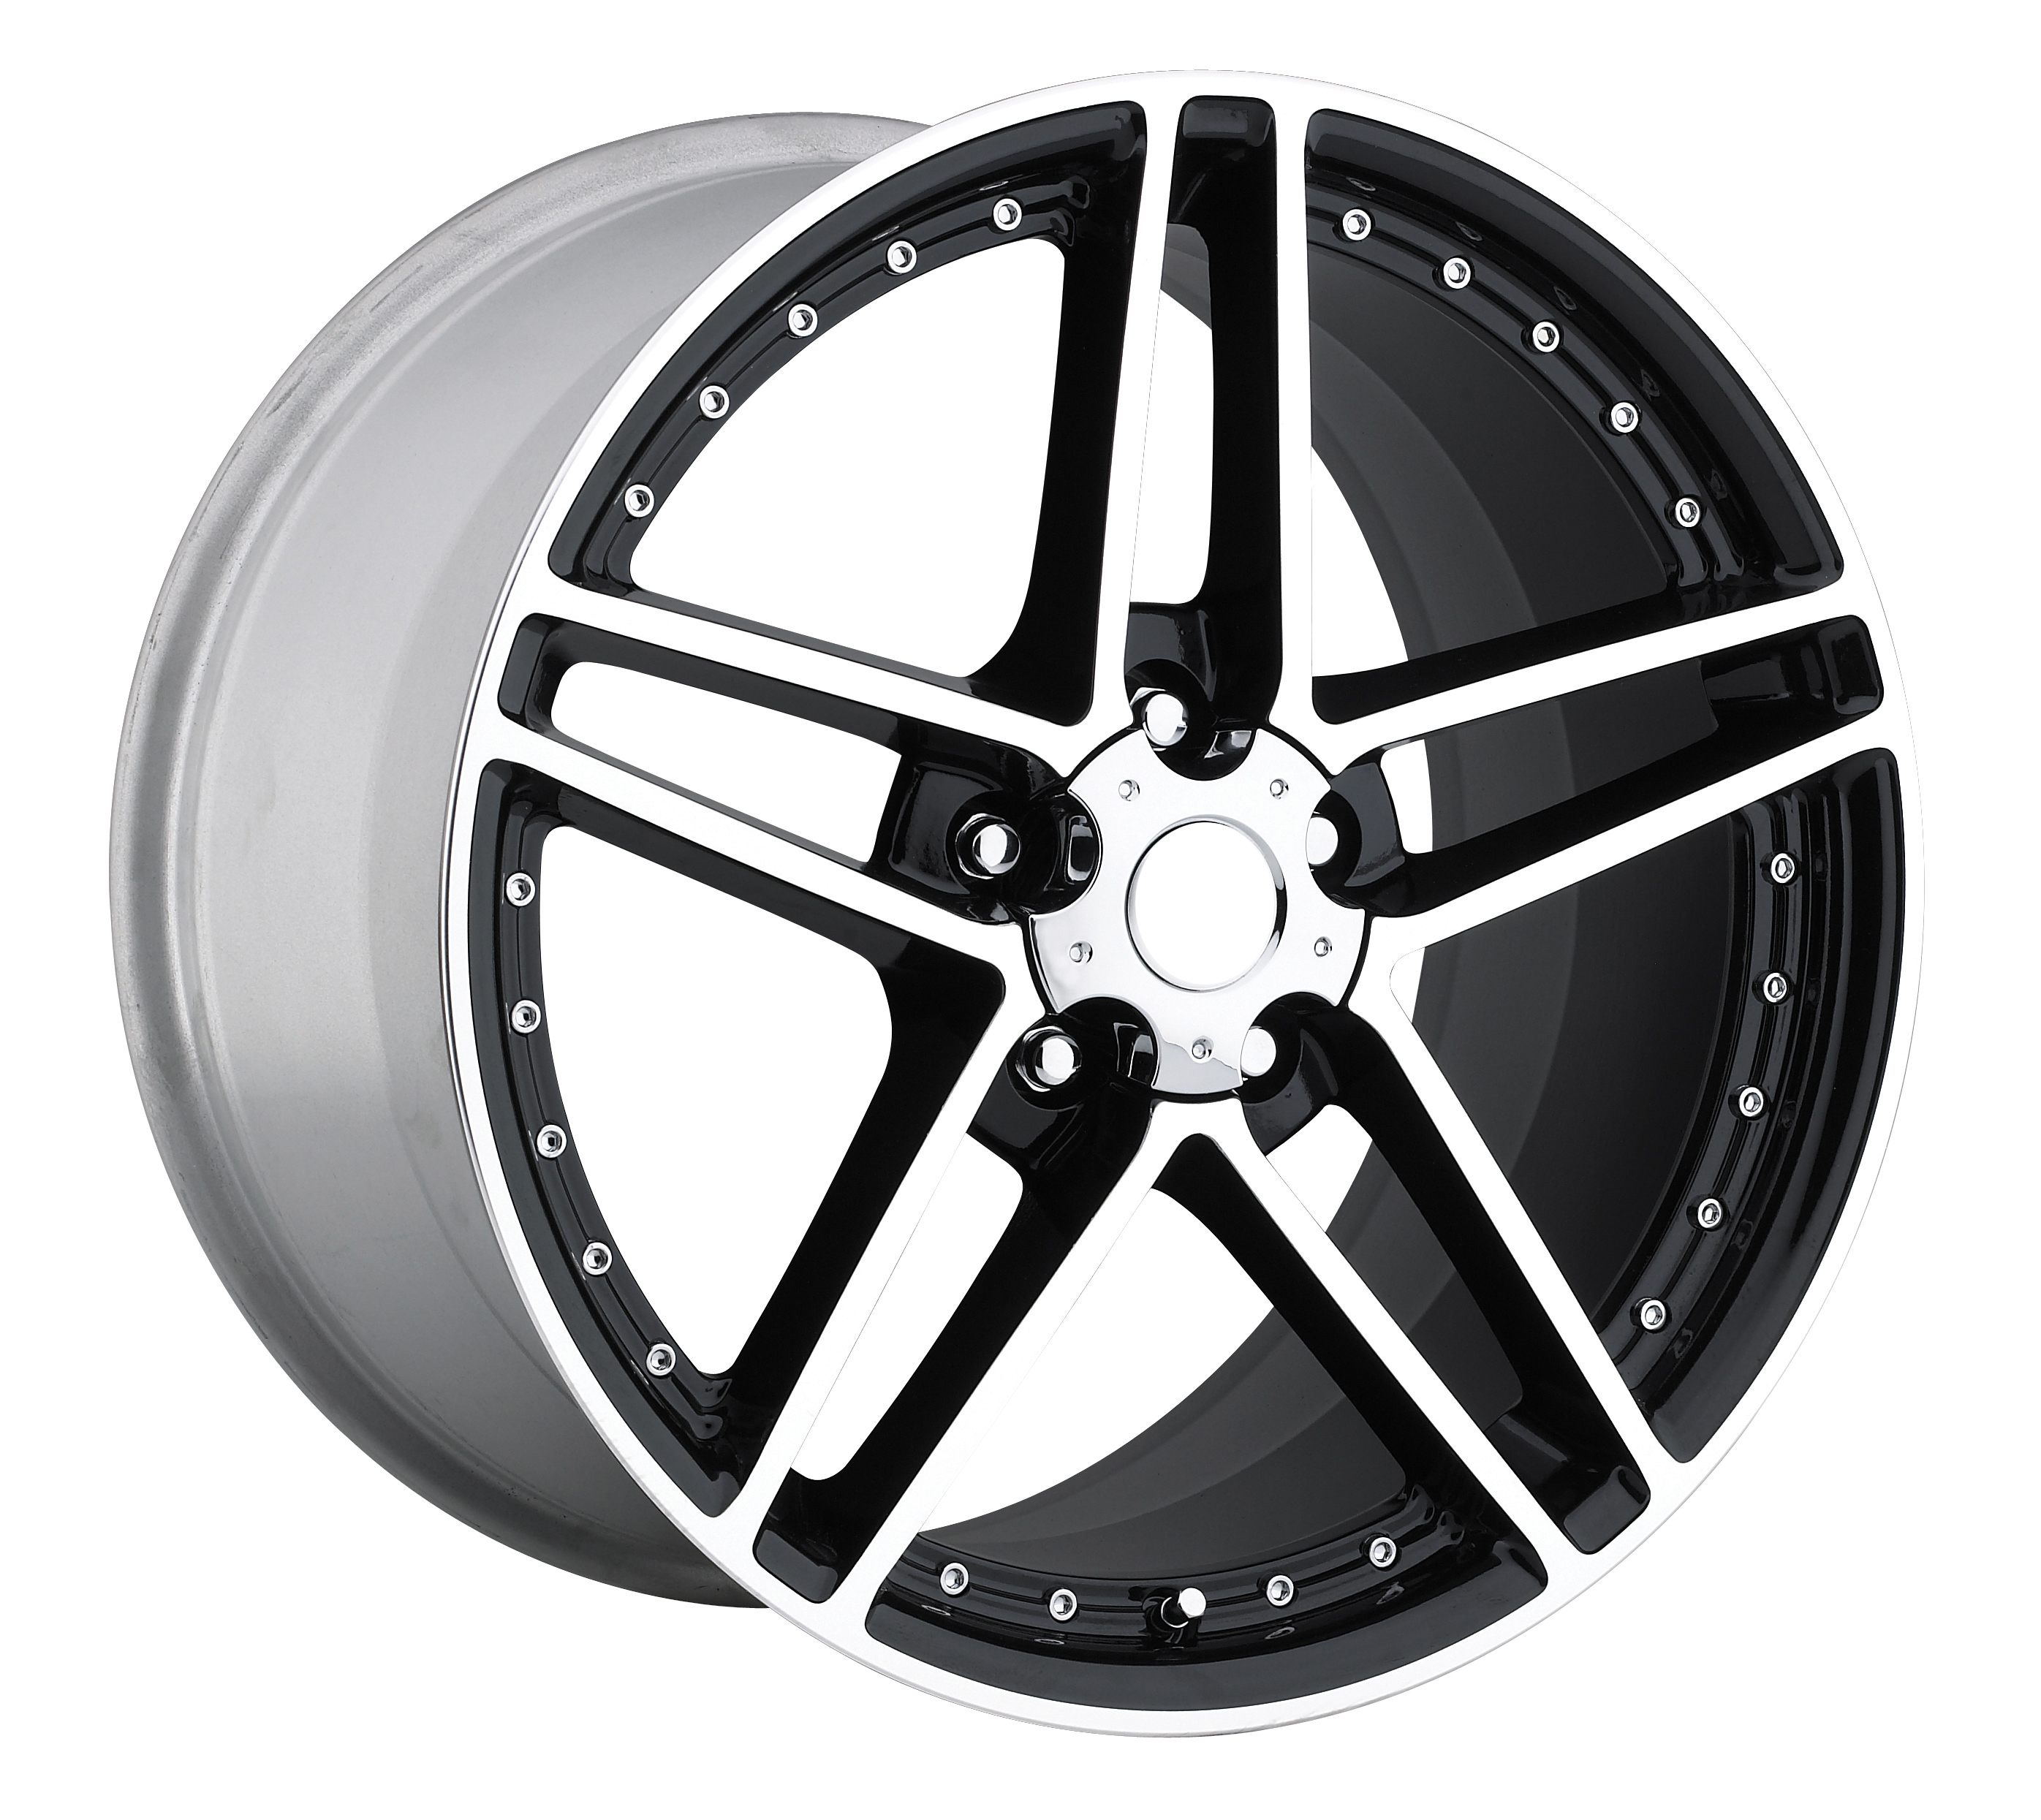 Chevrolet Corvette 1997-2012 18x8.5 5x4.75 +56 - C6 Z06 Motorsport Wheel -  Black Machine Face With Cap